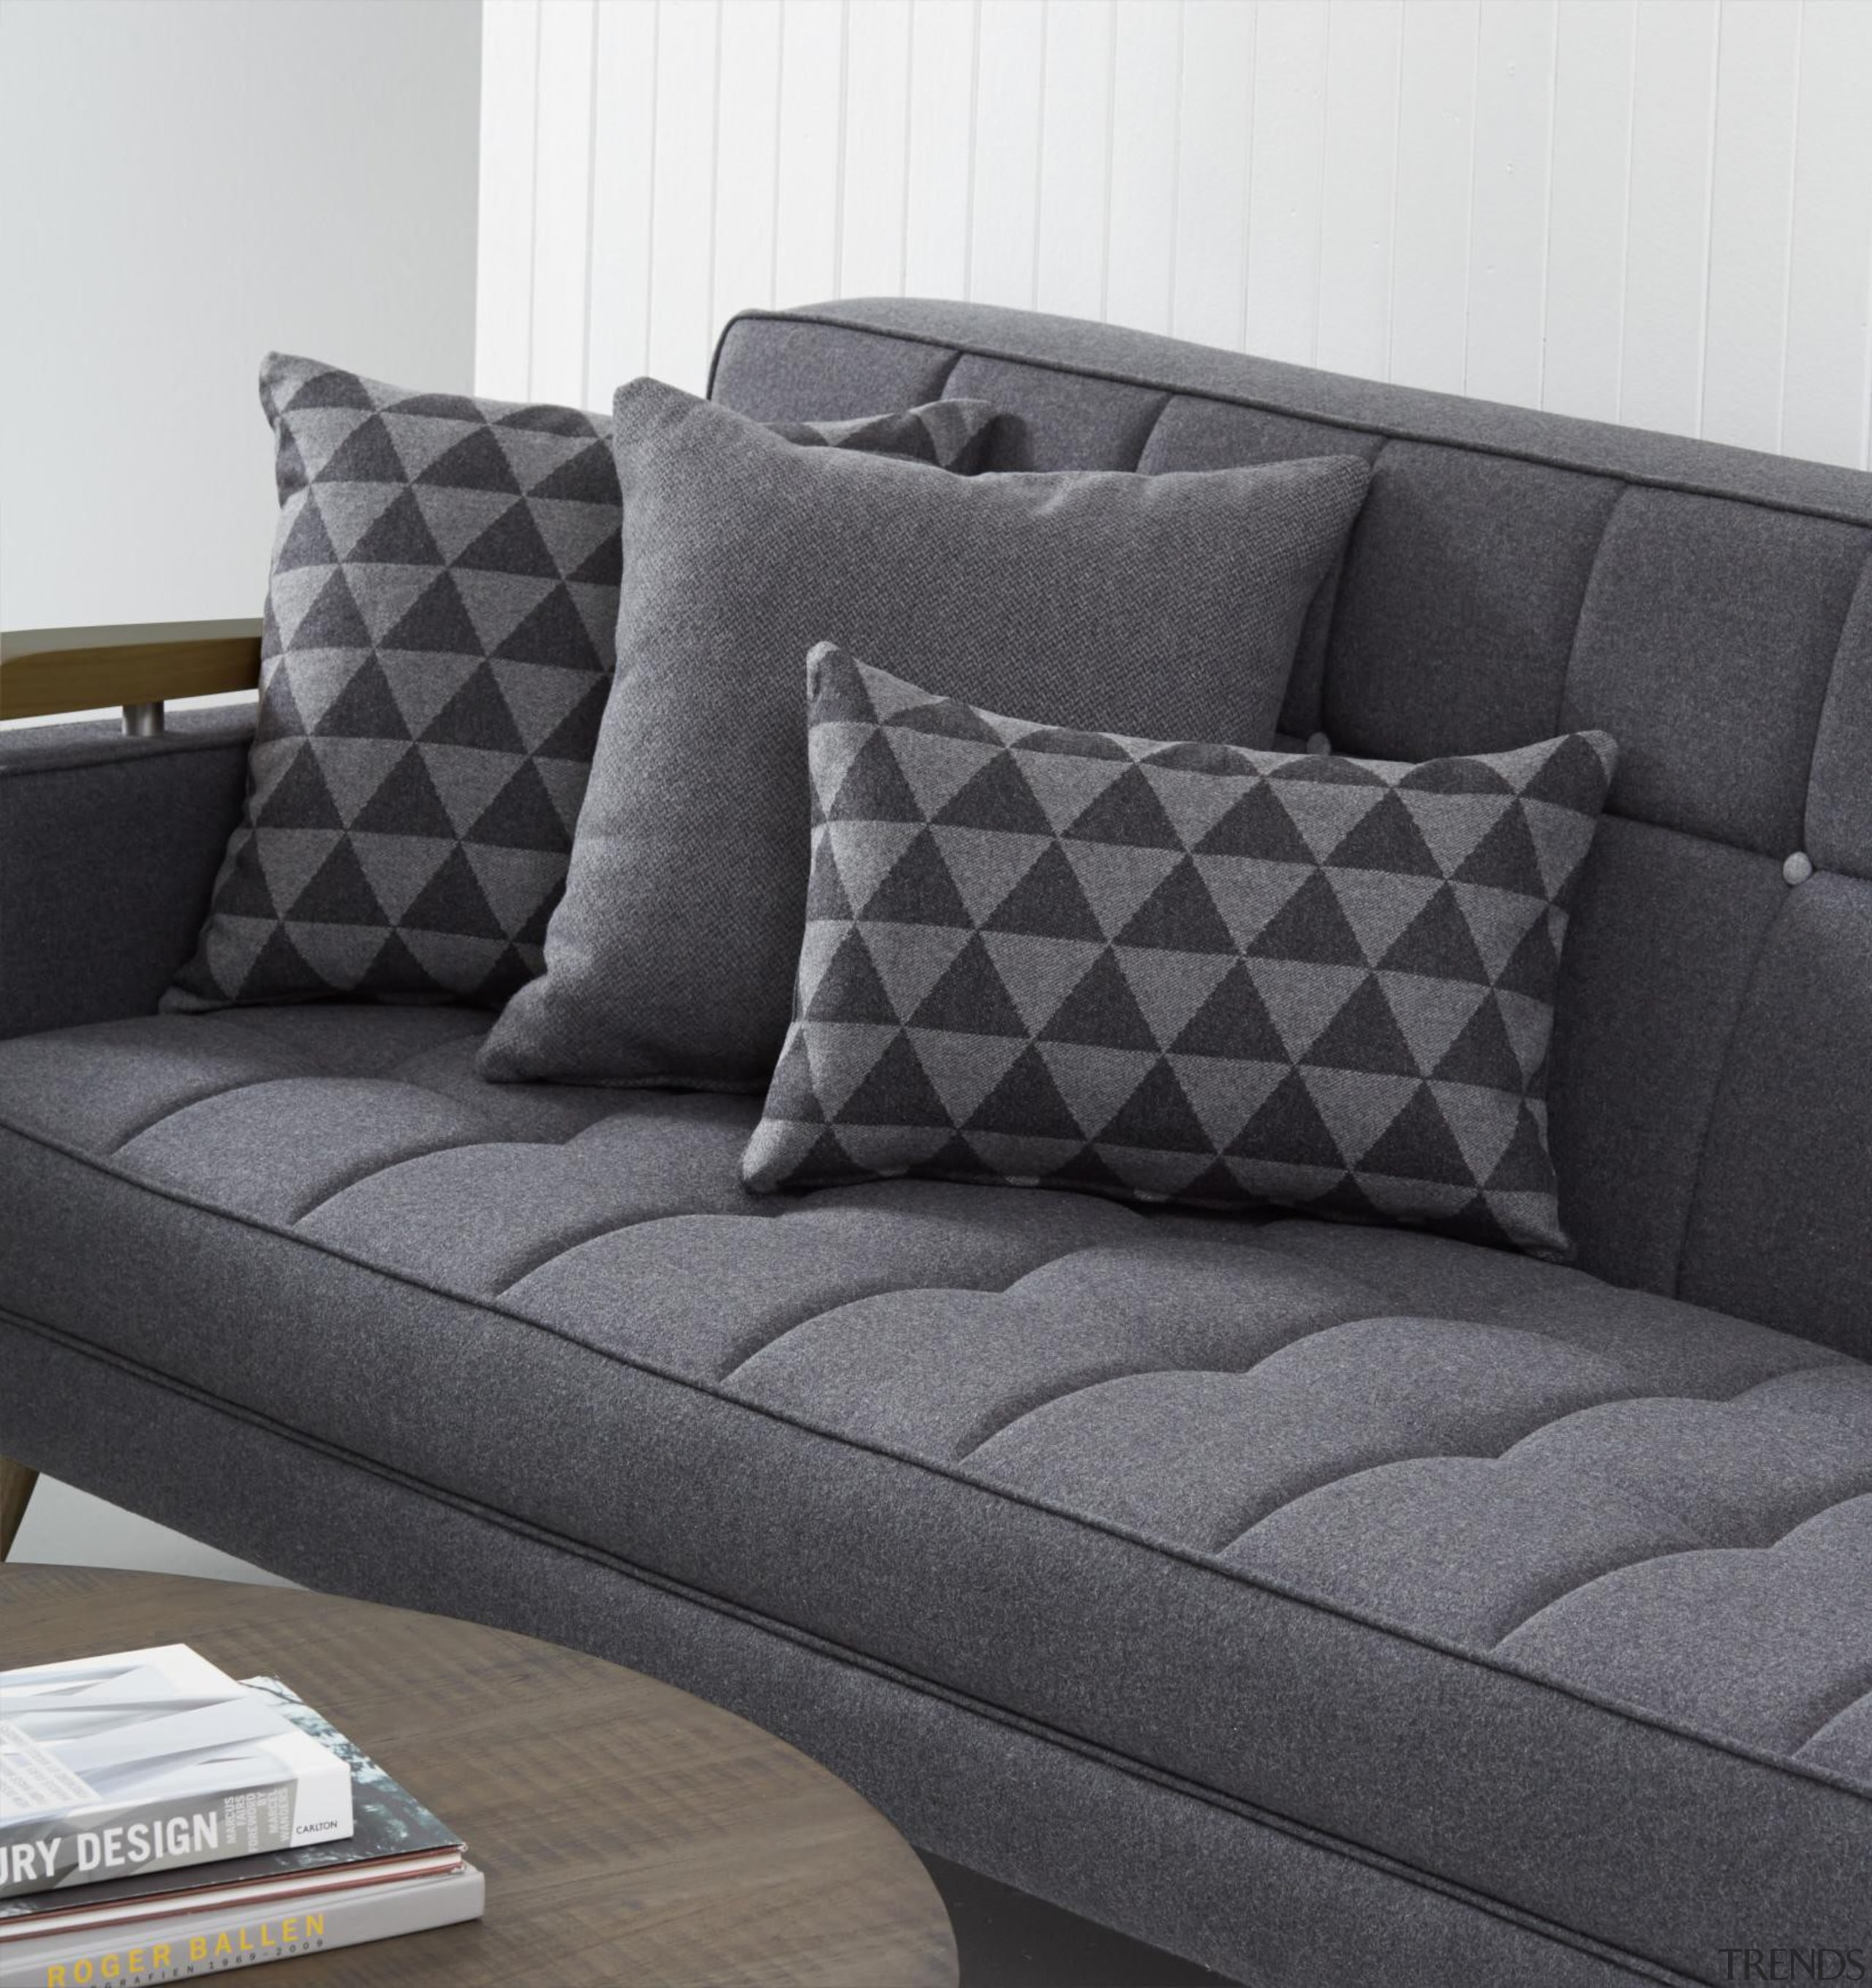 Richmond is an exciting addition to ourgrowing European angle, couch, cushion, furniture, living room, loveseat, sofa bed, studio couch, black, gray